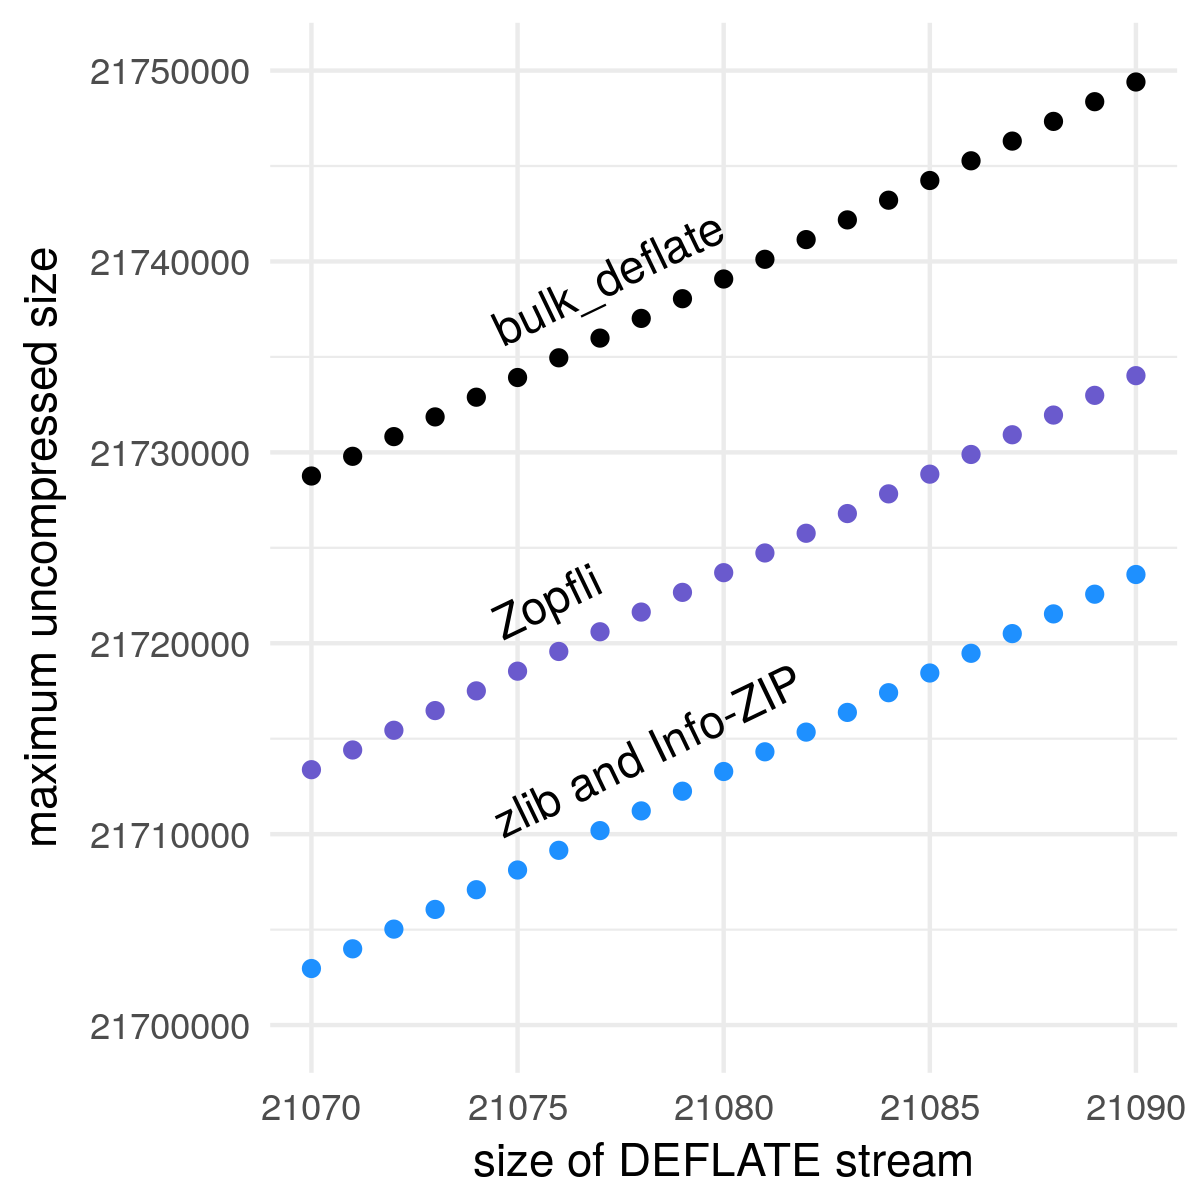 A scatterplot showing the maximum uncompressed data for a given DEFLATE stream size, for four compression engines: bulk_deflate, Zopfli, zlib, and Info-ZIP. The points form three lines because zlib and Info-ZIP were identical. All three lines have a slope of 1032. For a given DEFLATE stream size, bulk_deflate compresses about 15 kB more than Zopfli, and Zopfli compresses about 10 kB more than zlib/Info-ZIP.